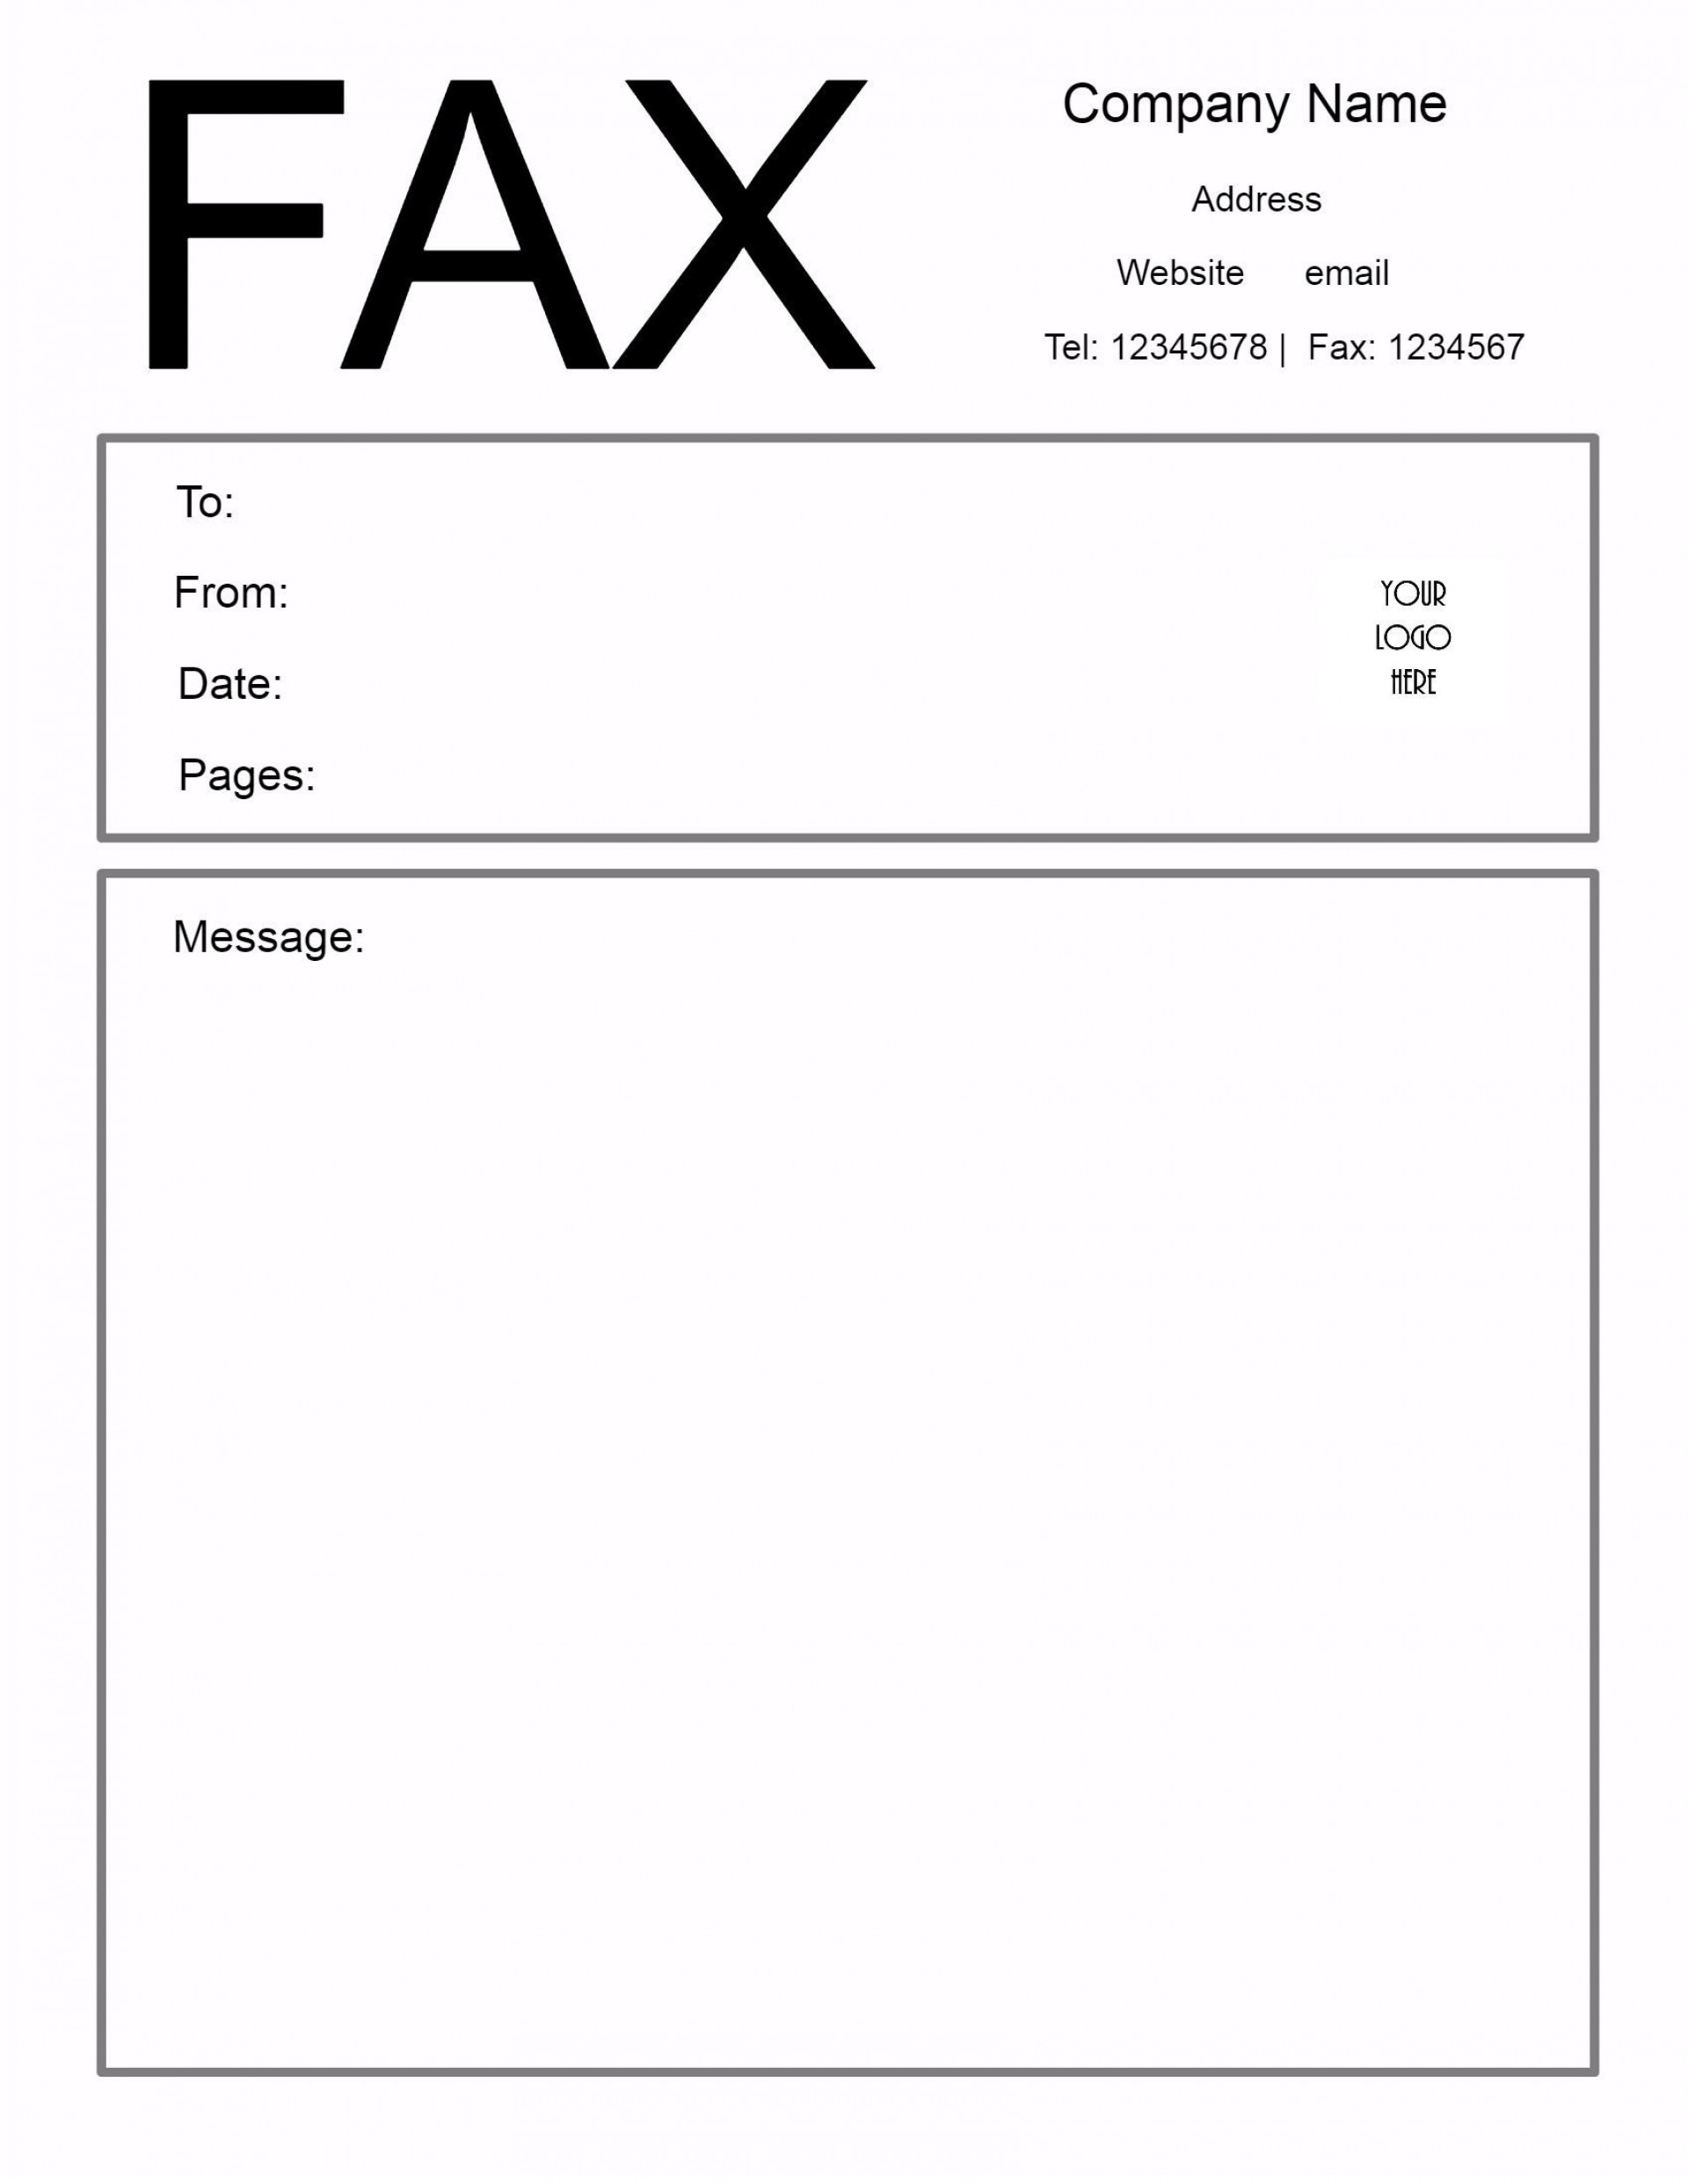 009 Excellent General Fax Cover Letter Template Highest Clarity  Sheet Word Confidential Example1920